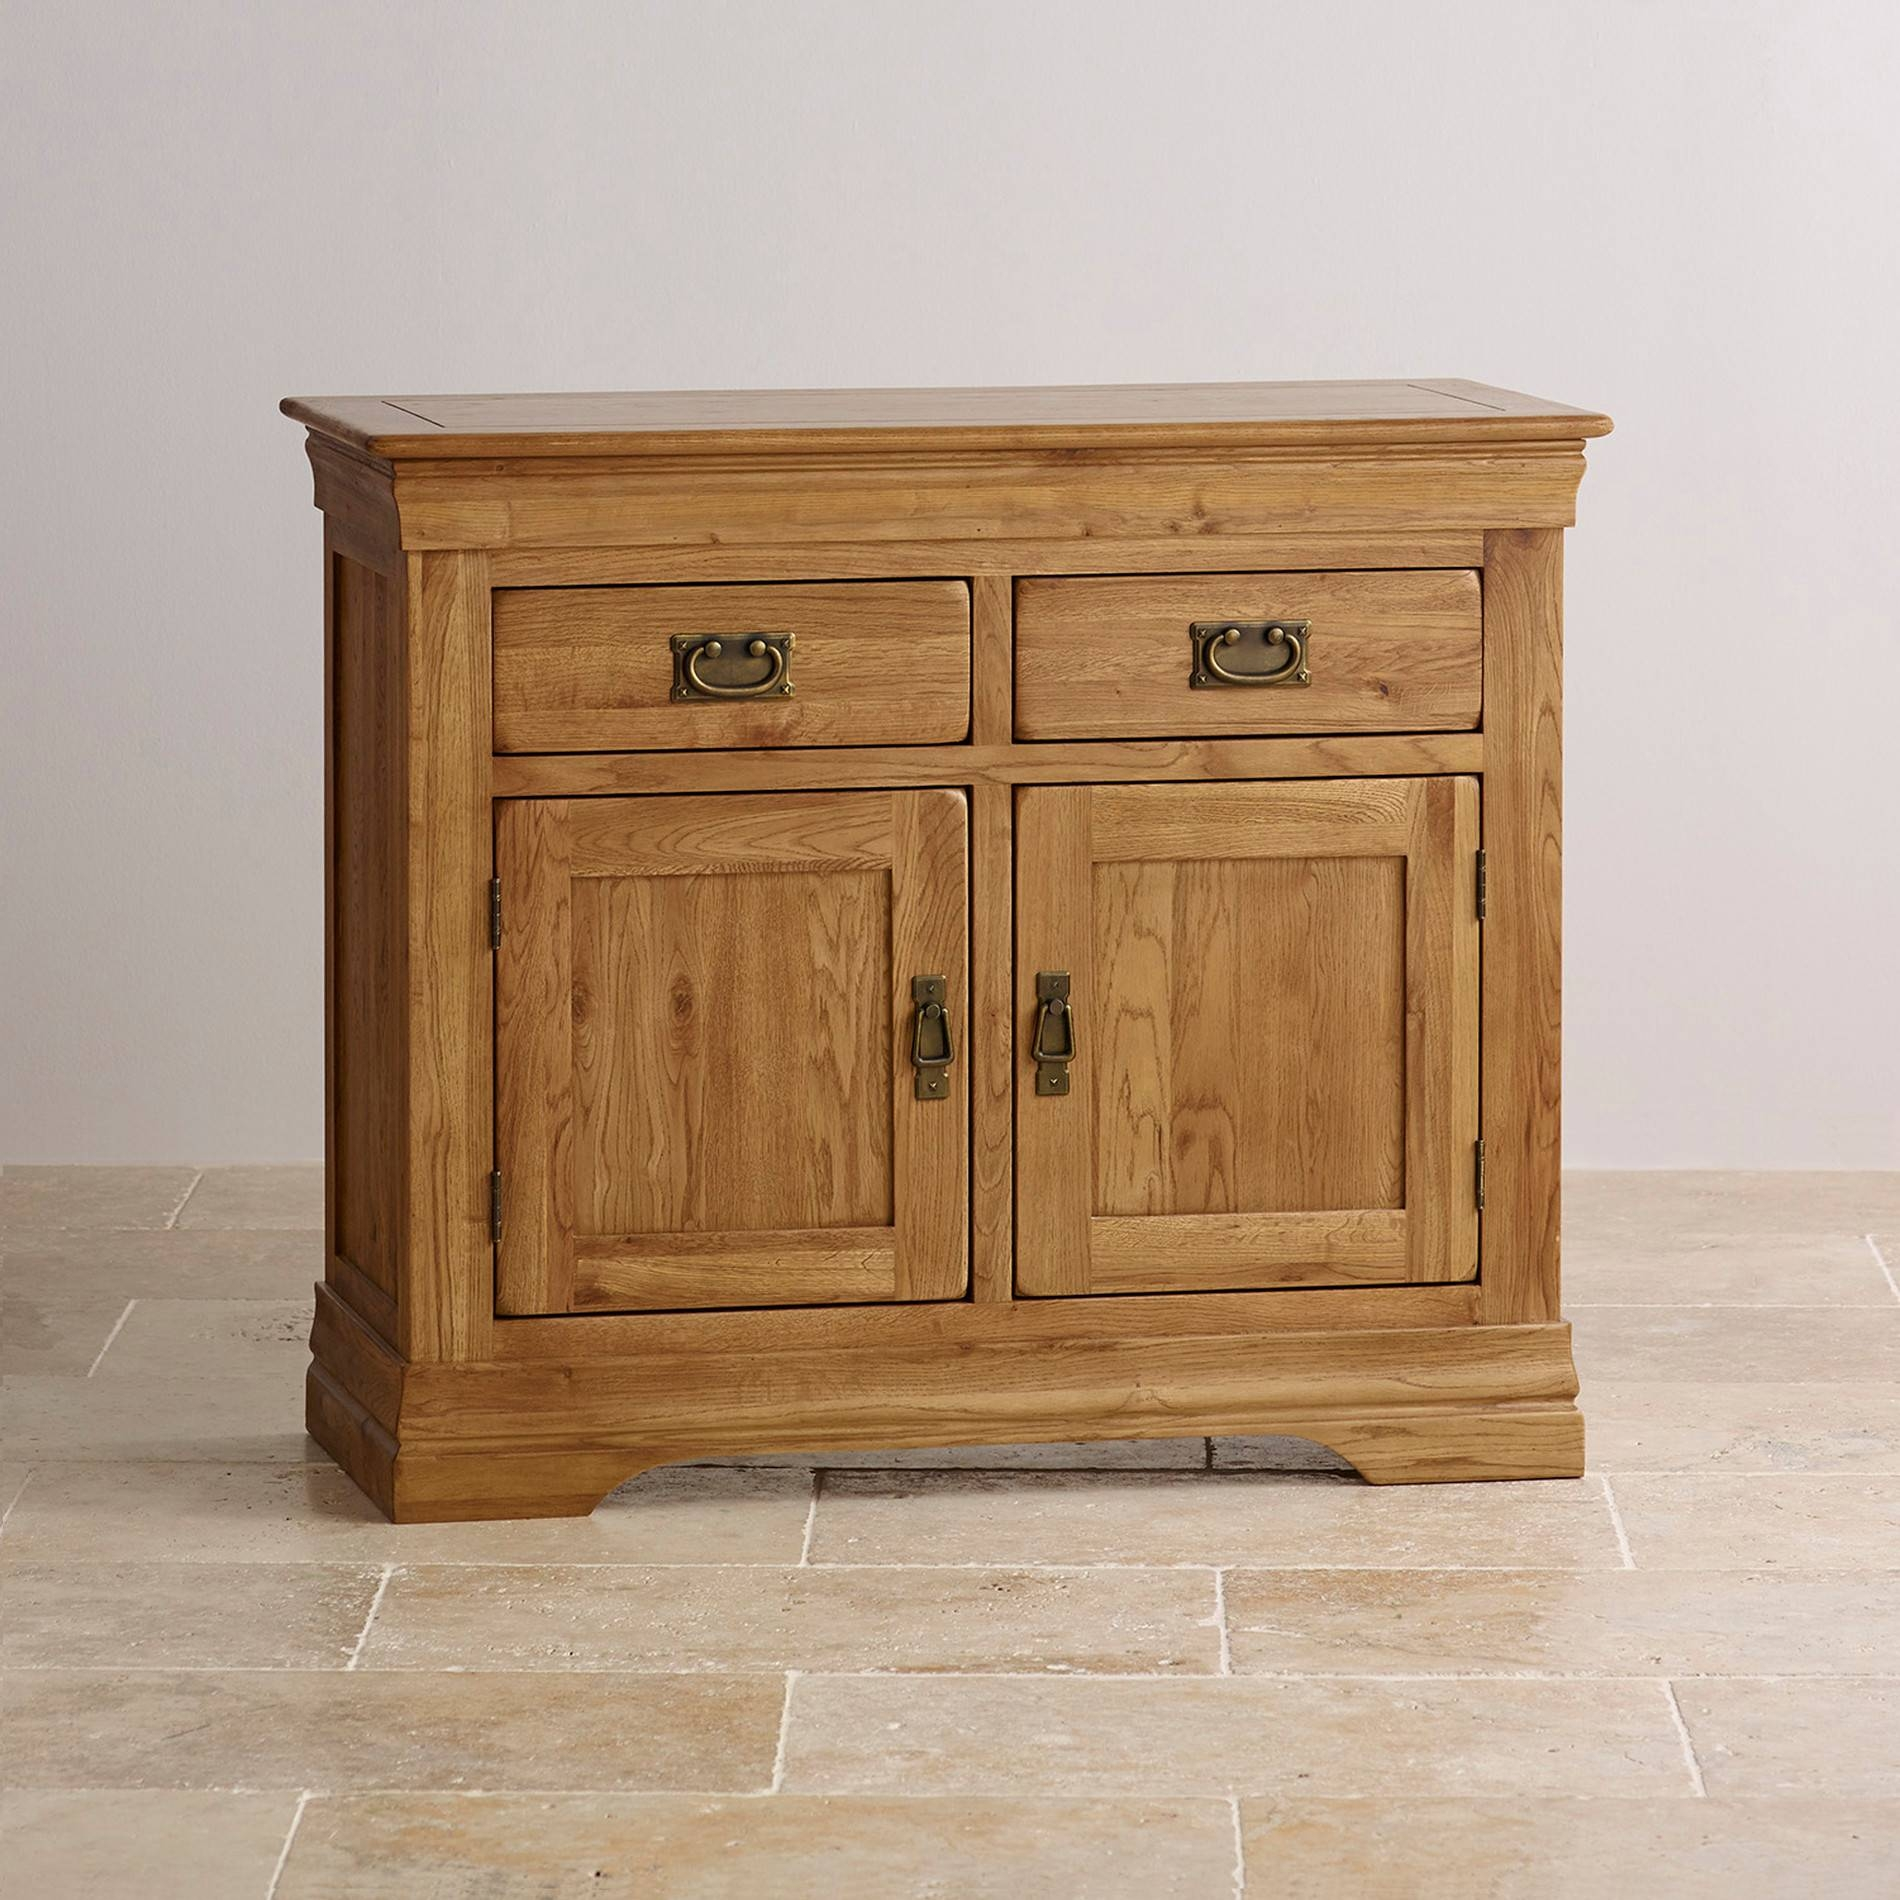 French Farmhouse Small Sideboard In Solid Oak Throughout Small Wooden Sideboards (#4 of 15)